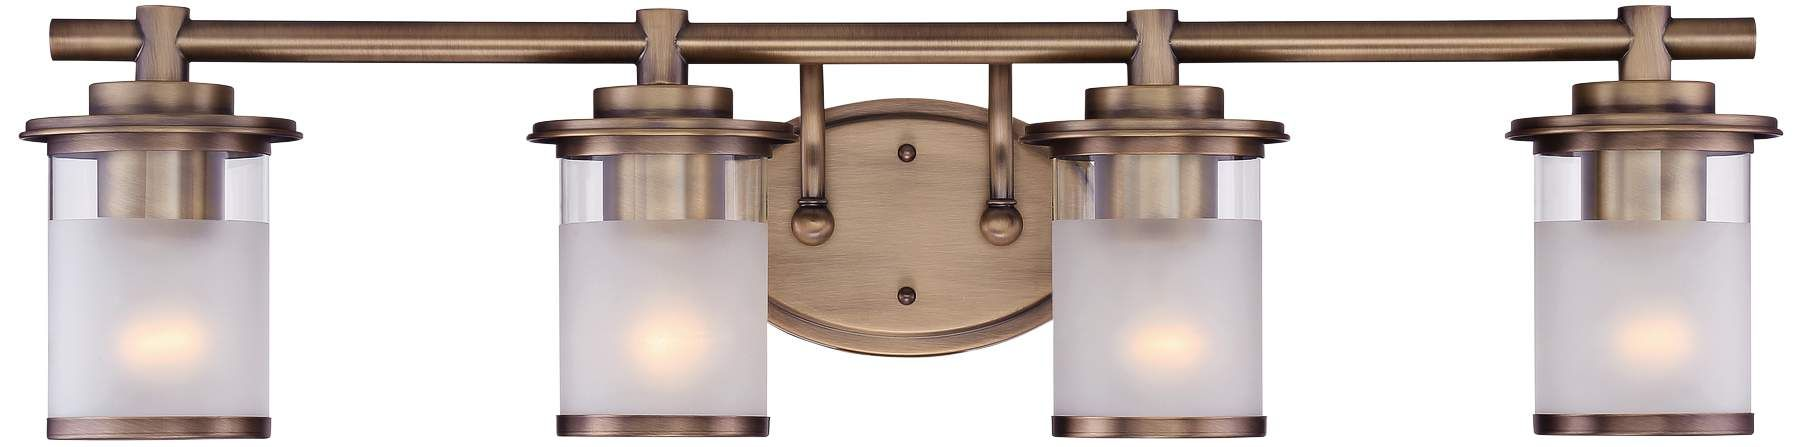 Photo of Essence 32 And One Half Inch Wide Satin Bronze 4 Light Vanity Bath Light